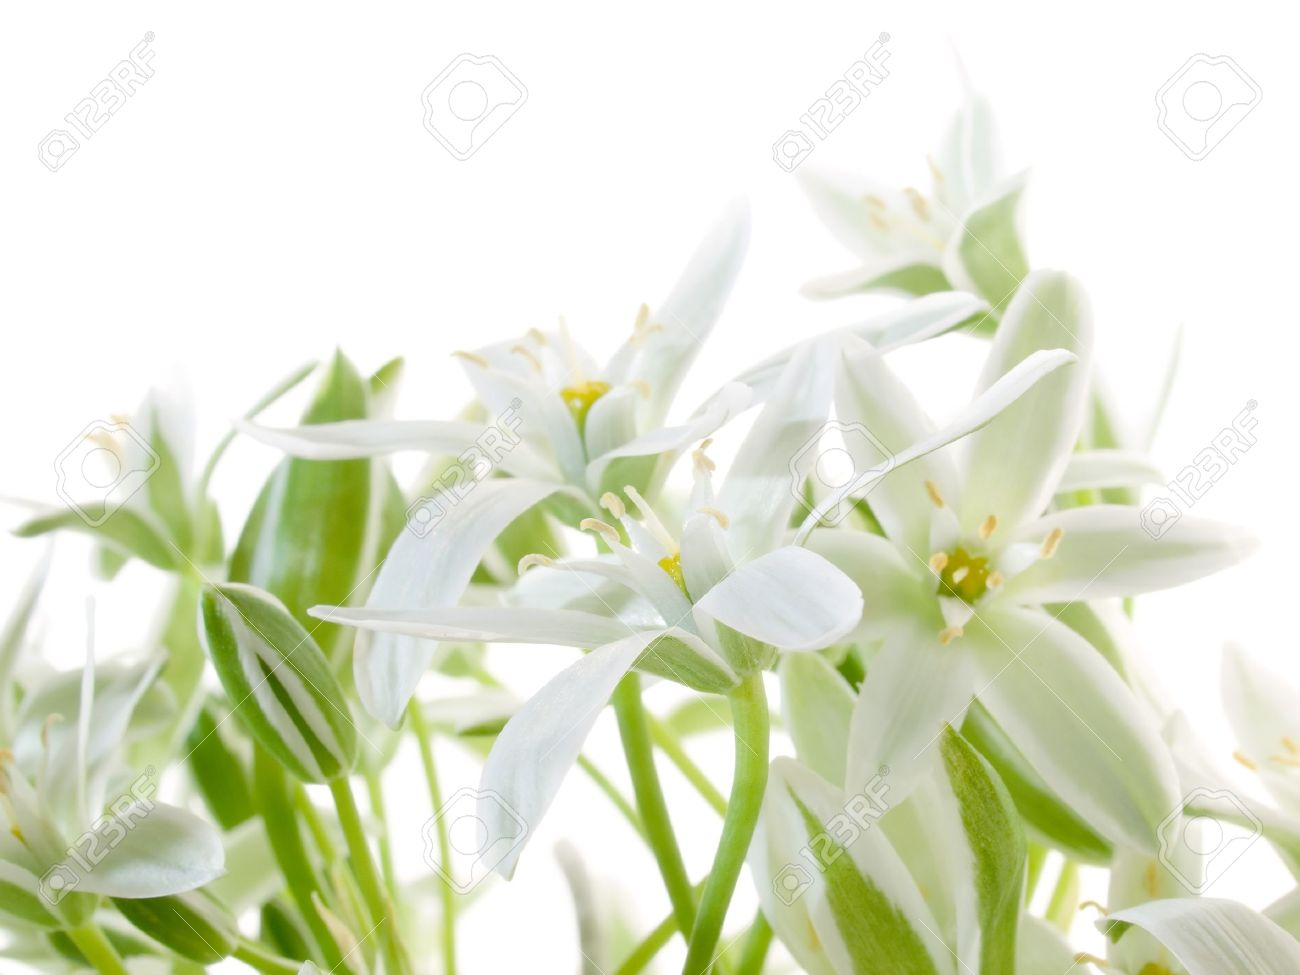 Flowers on white background images stock pictures royalty free flowers white background white flowers isolated on white background stock photo dhlflorist Image collections